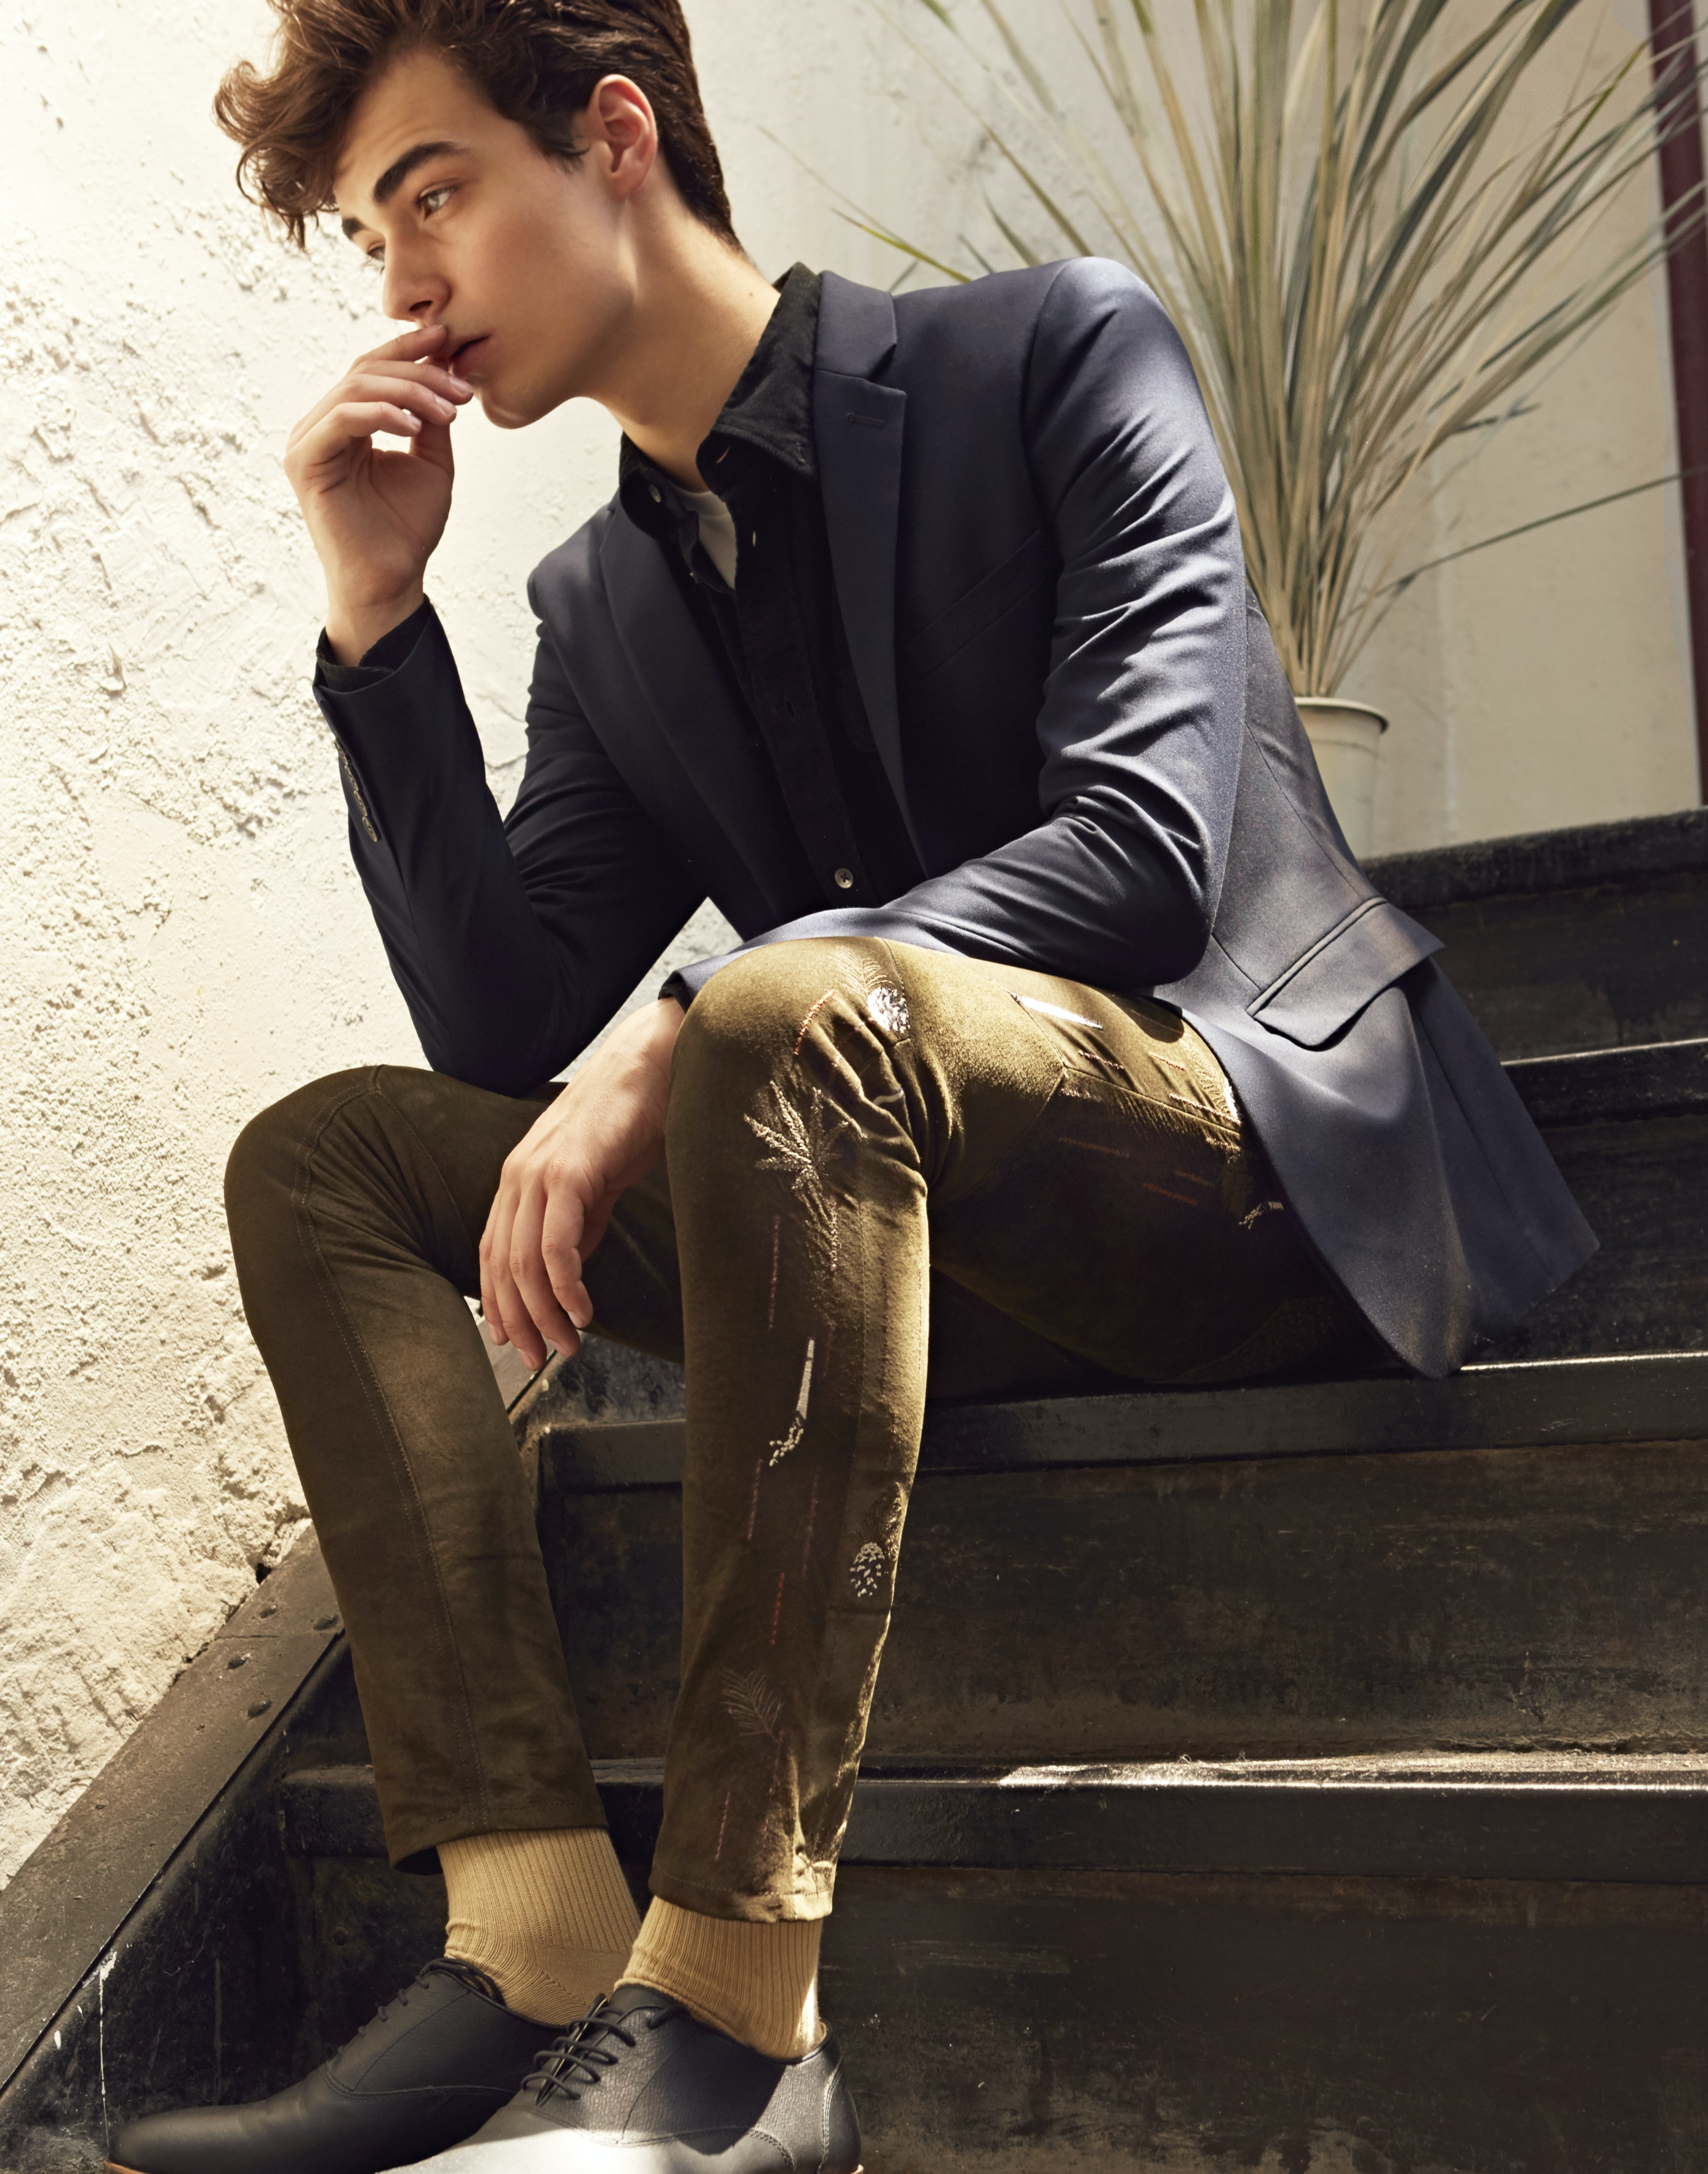 man sitting on brown staircase